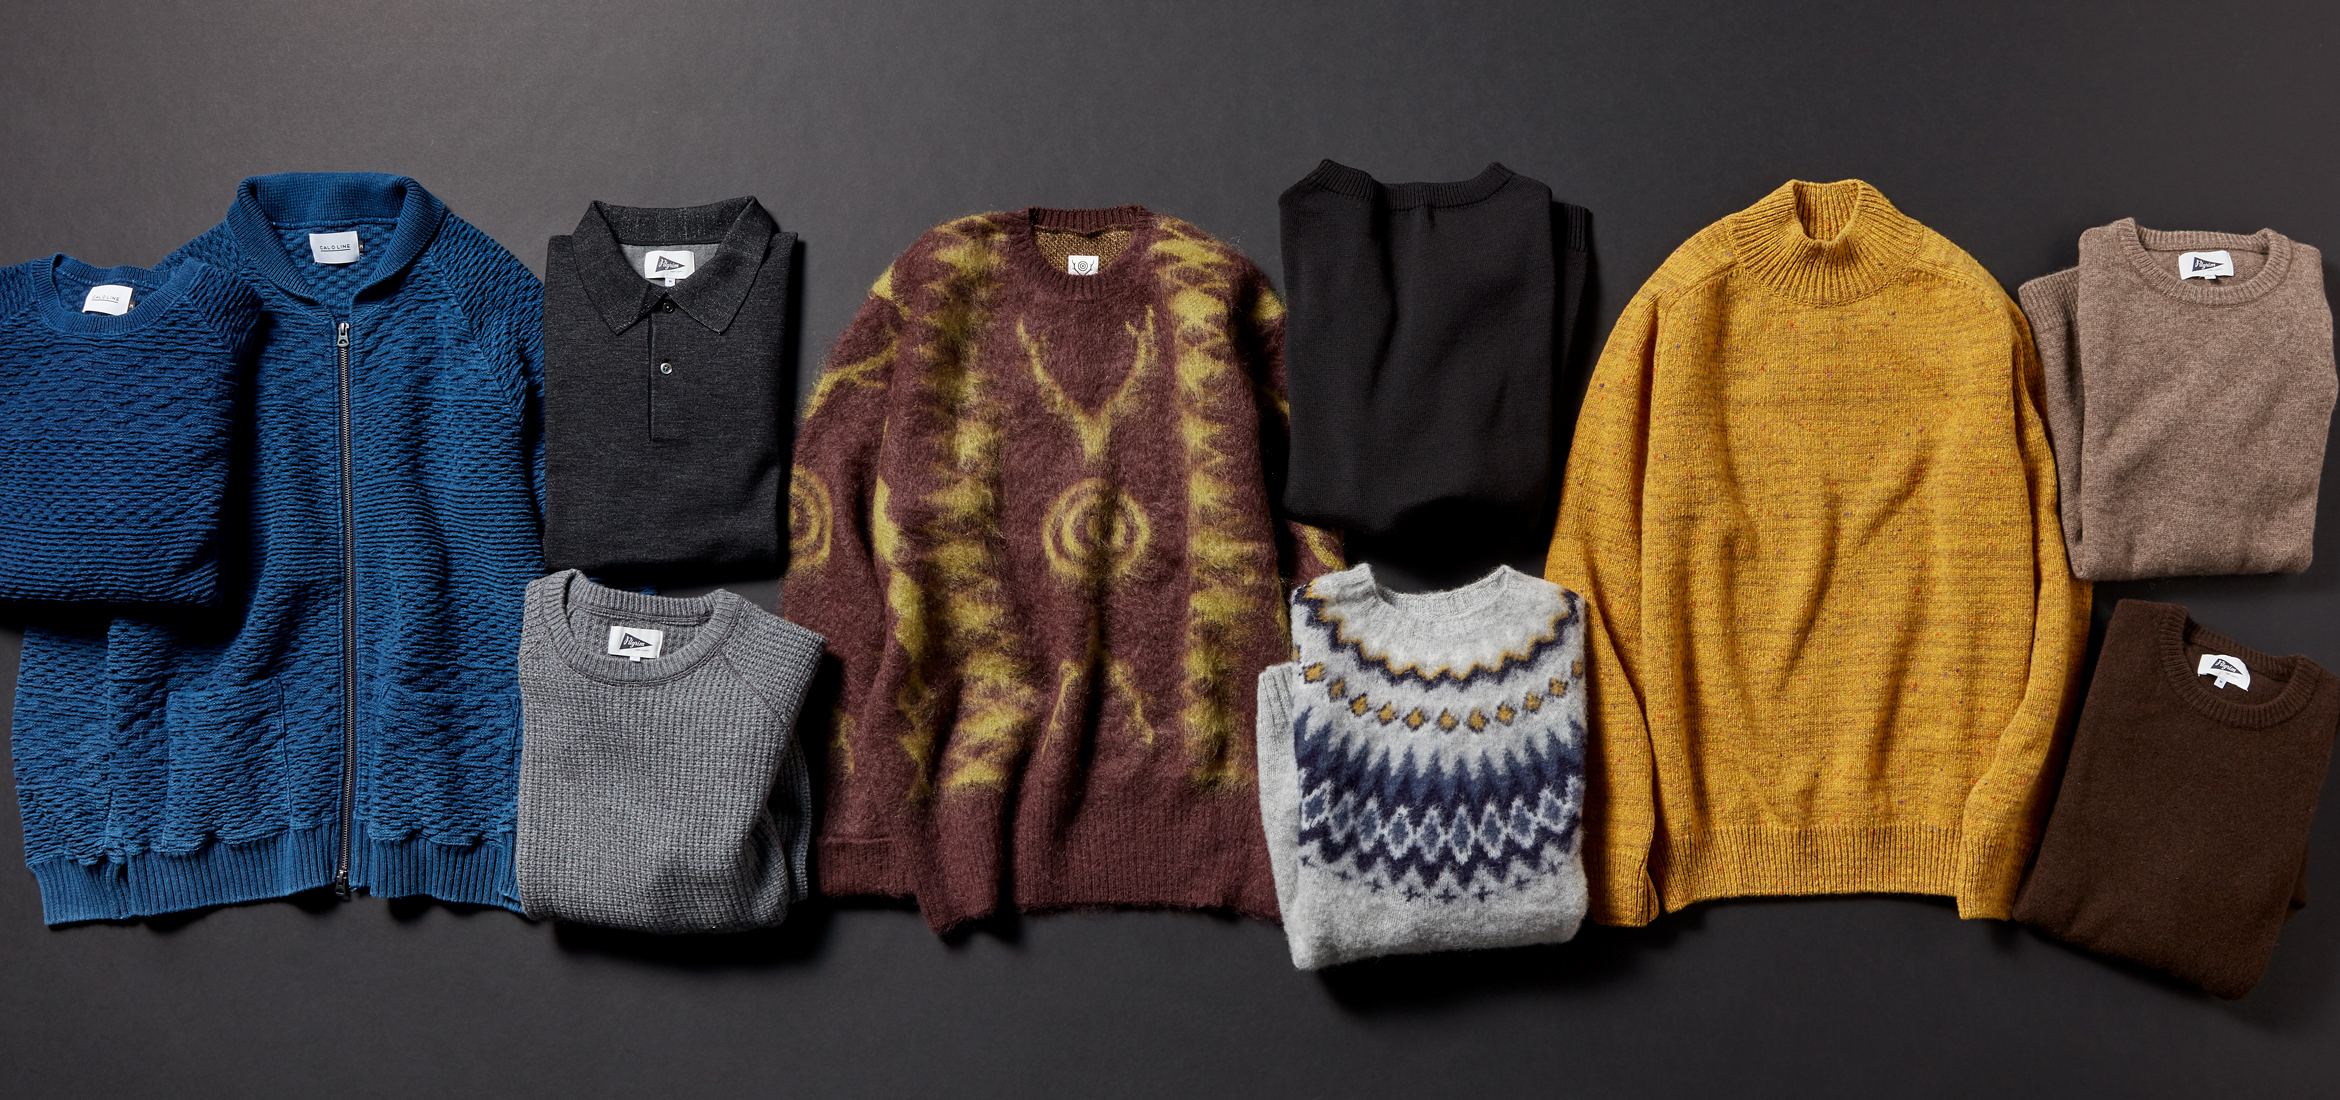 KNIT SEASON for MEN